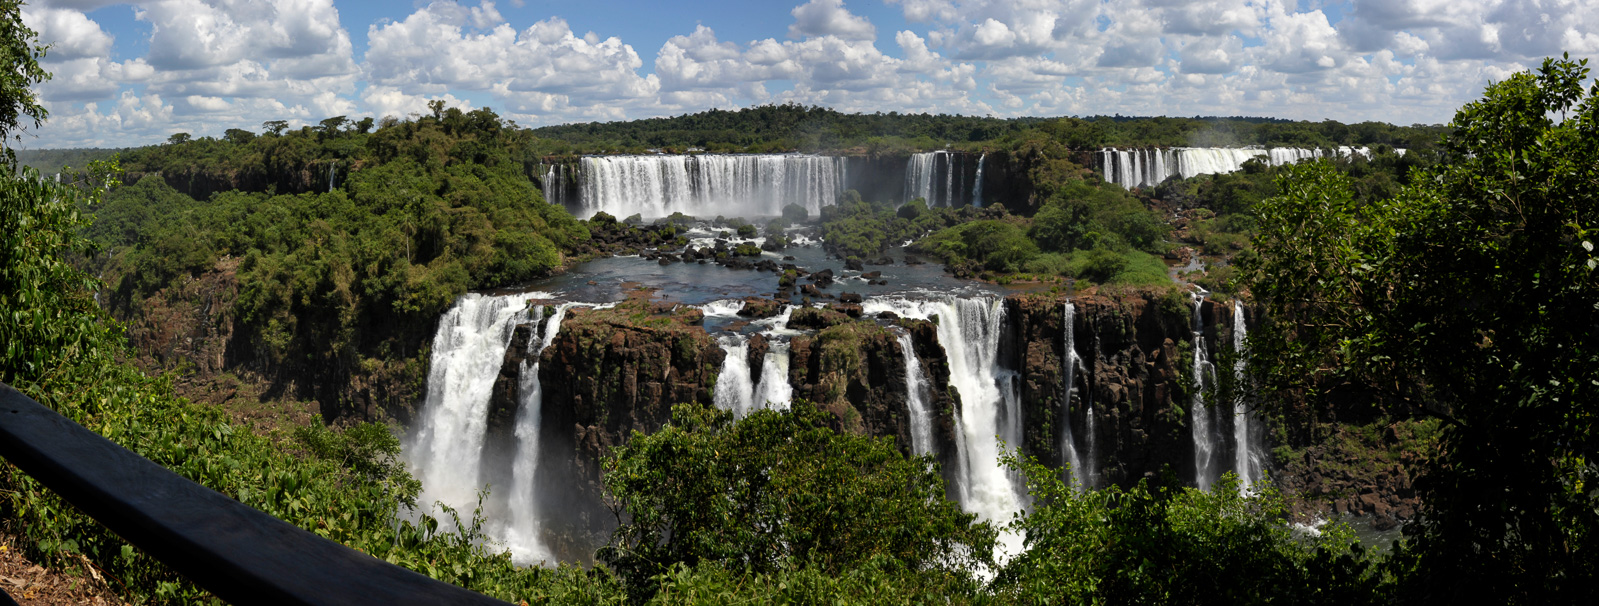 Cataratas del Iguazu [28 mm, 1/320 sec at f / 14, ISO 400]